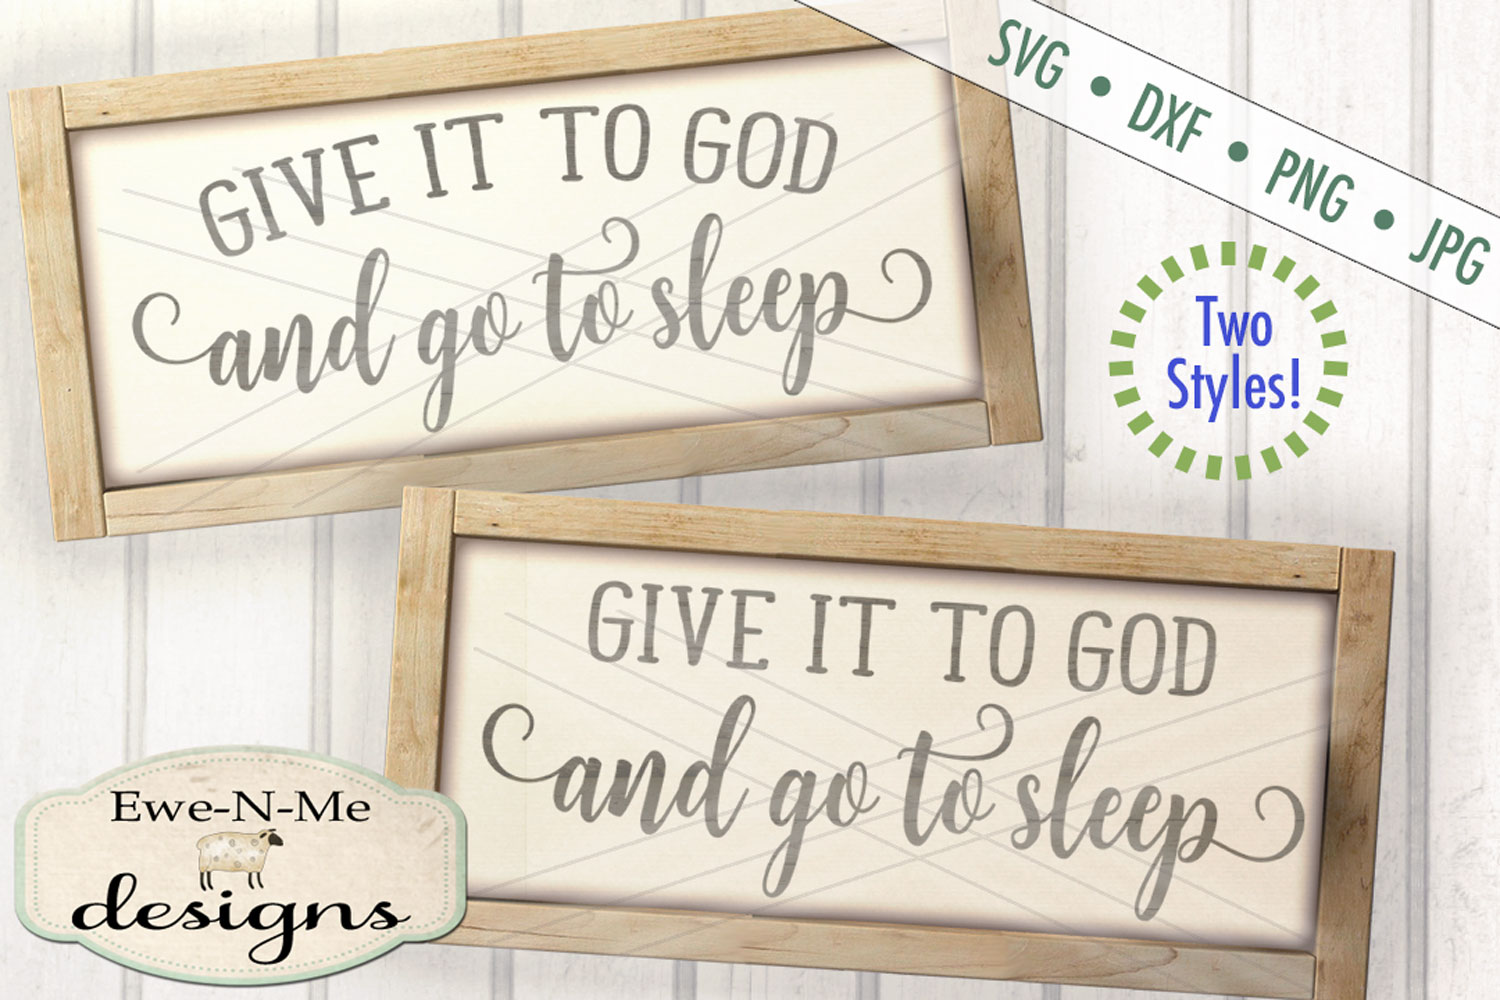 Give It To God And Go To Sleep SVG DXF Cut File example image 1